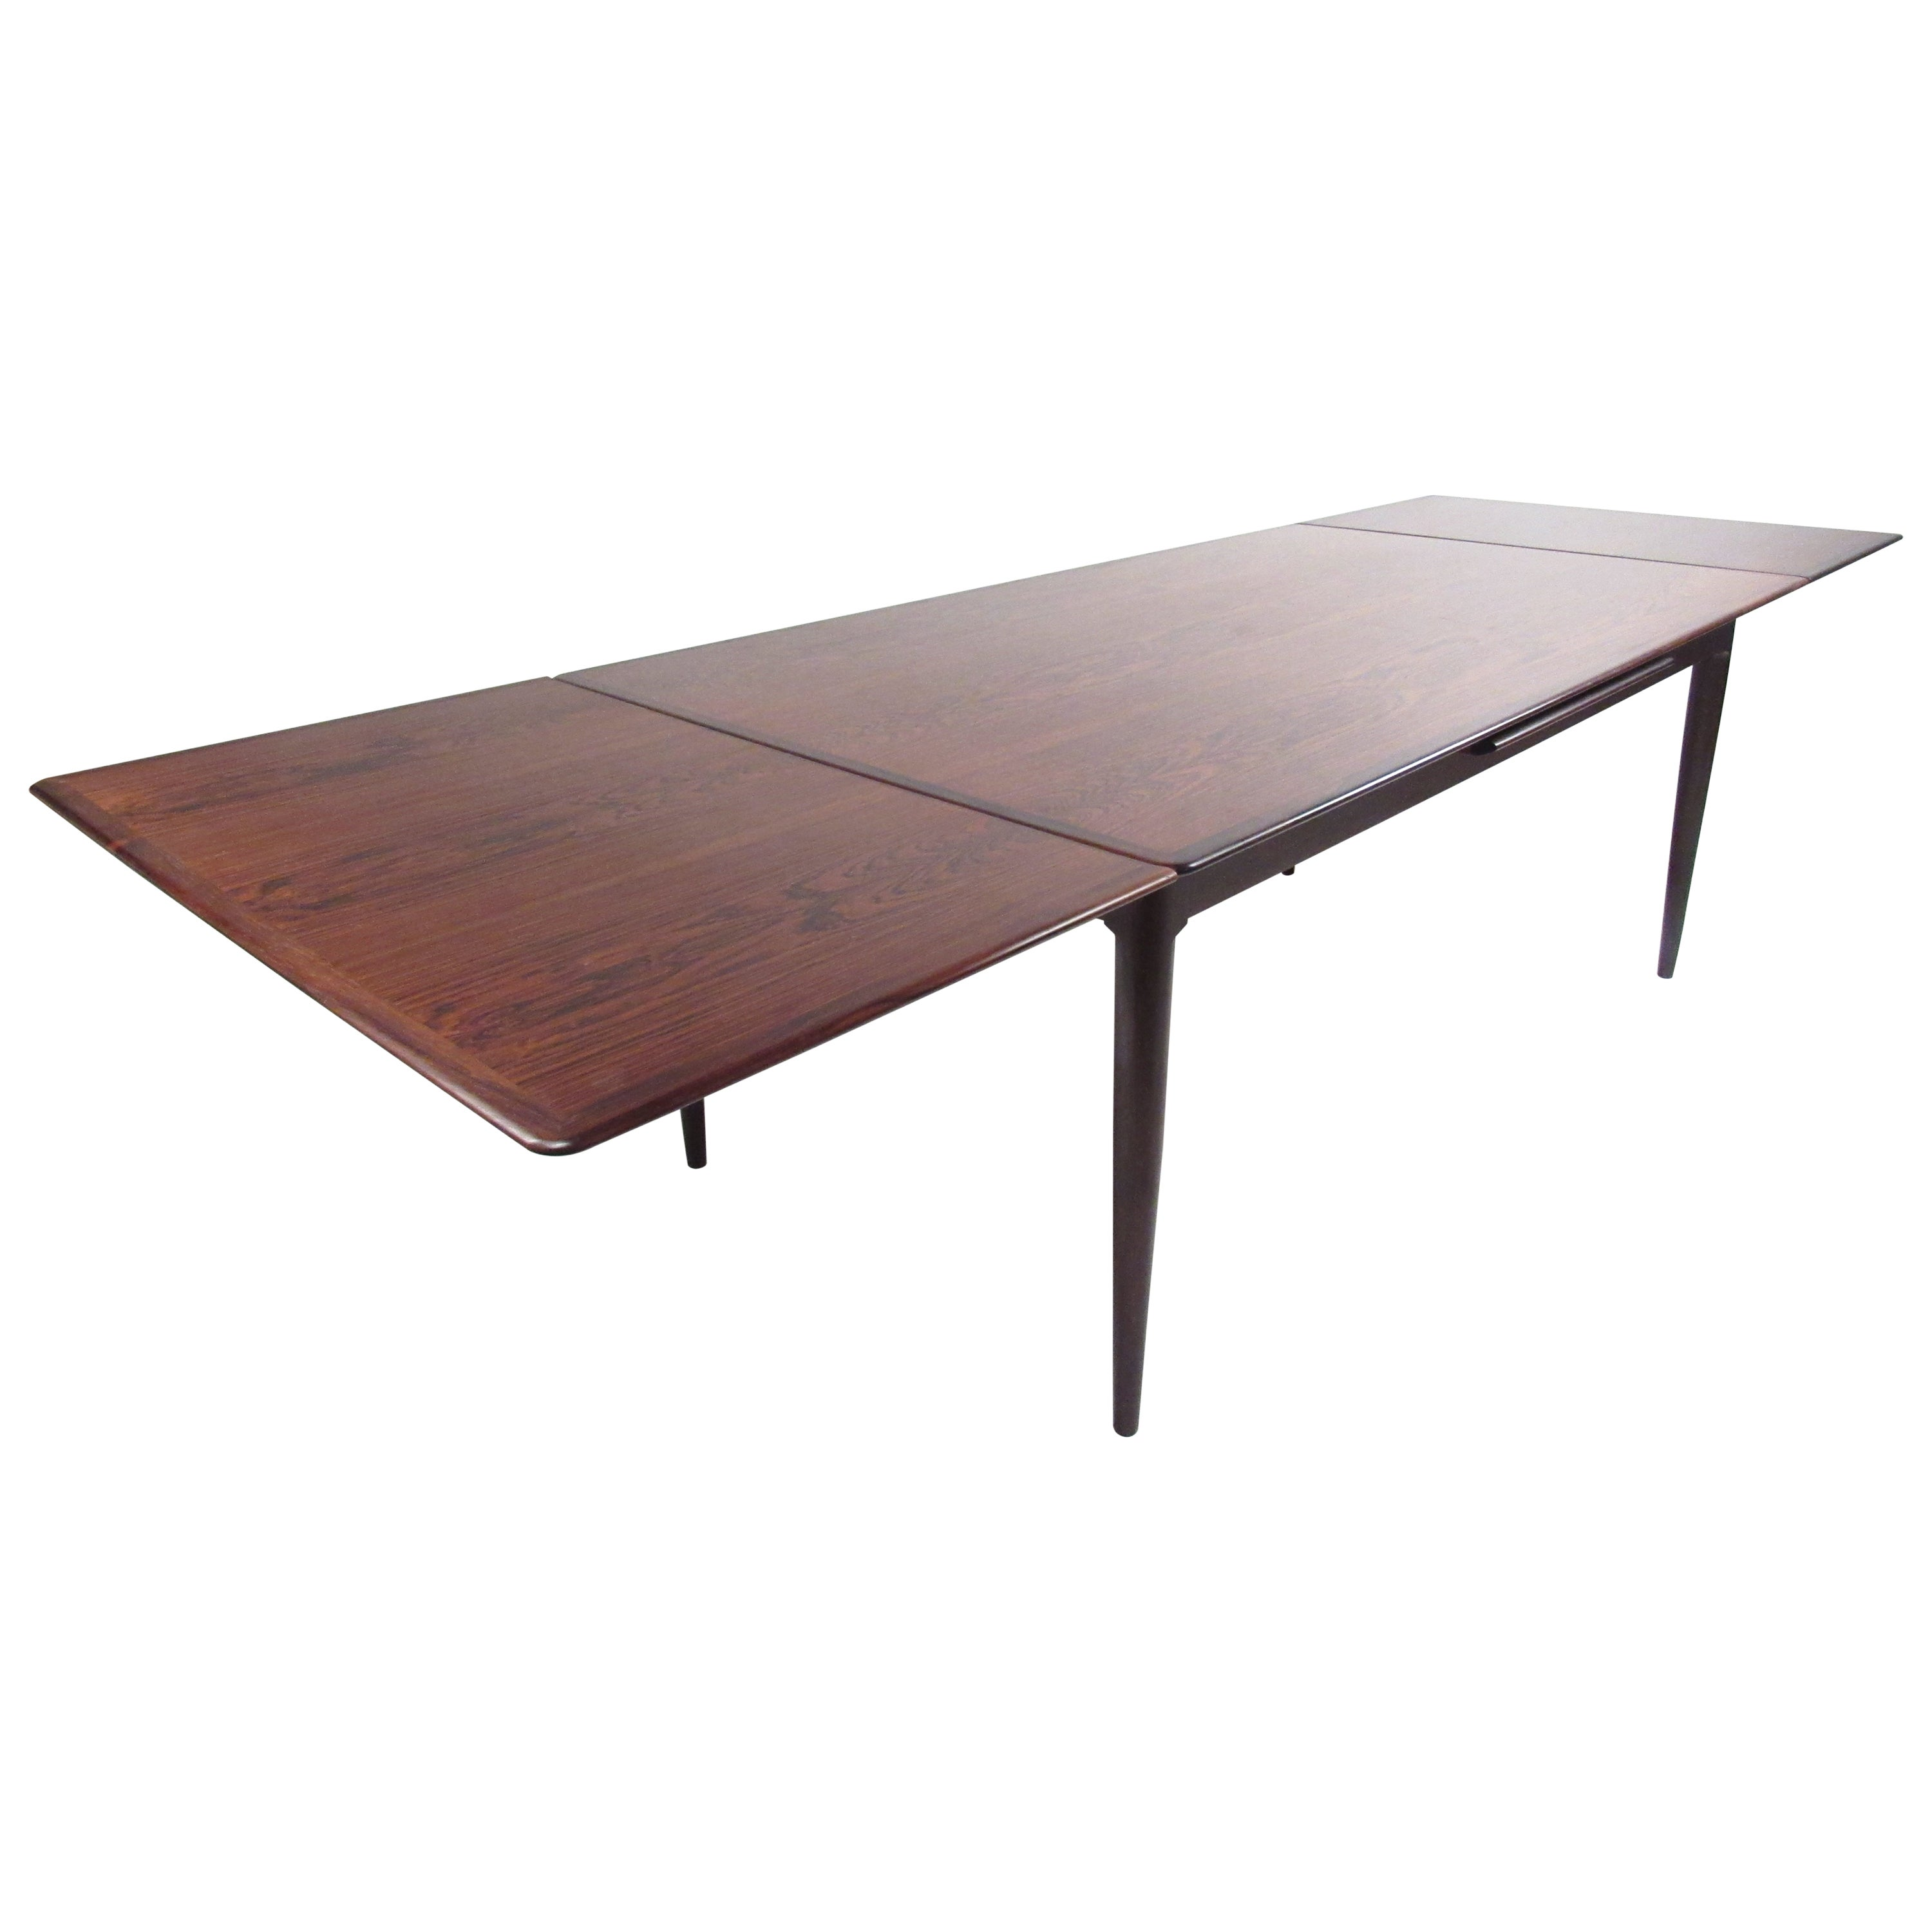 Exquisite Midcentury Danish Rosewood Draw Leaf Dining Table